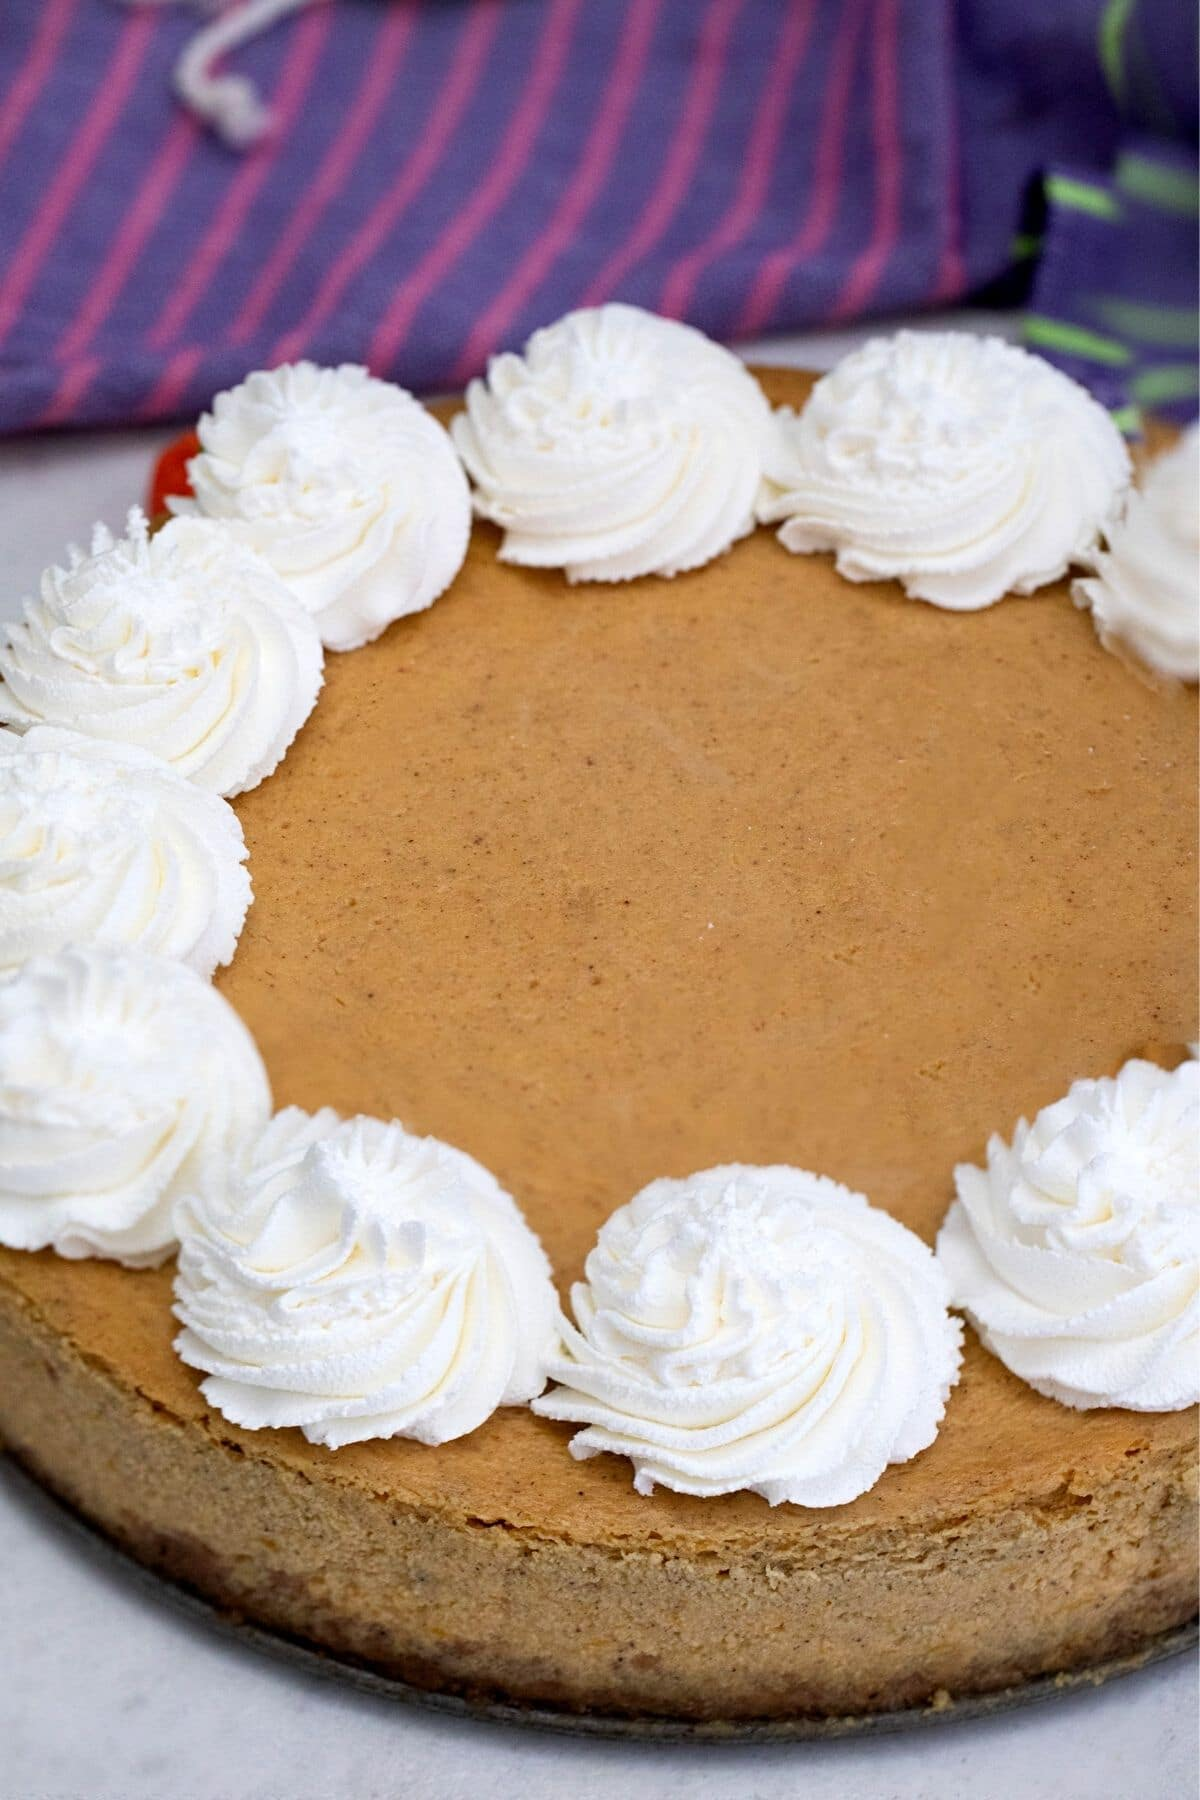 Whole cheesecake with dollops of whipped cream around edge